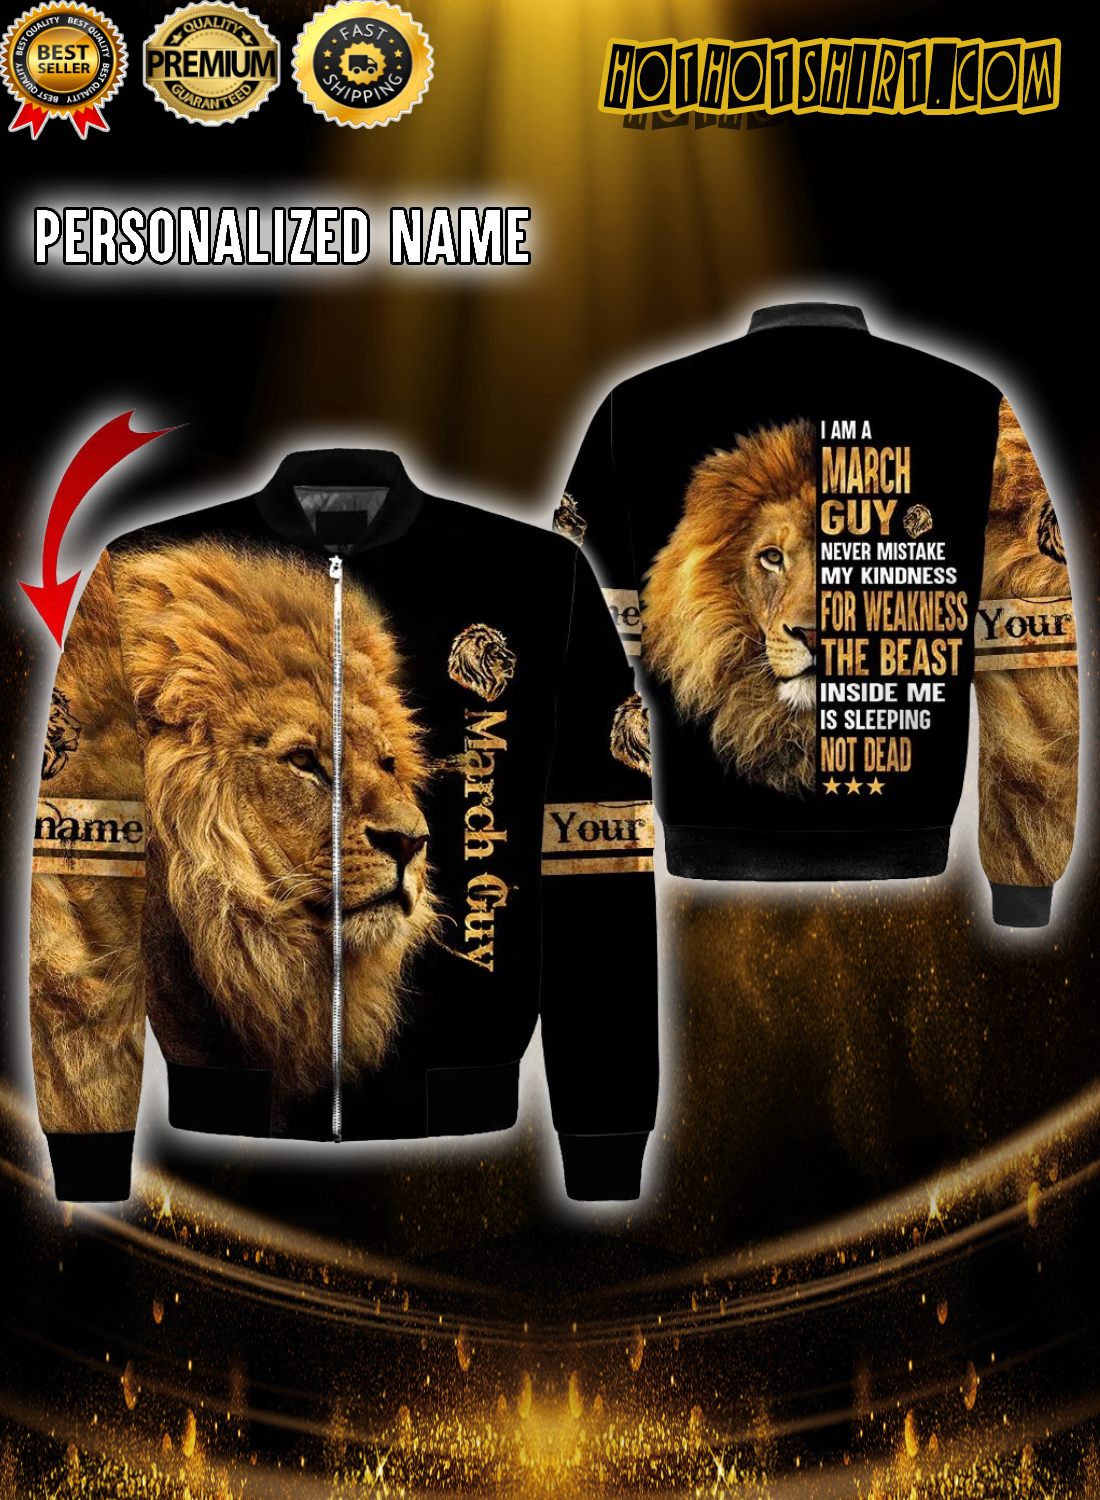 Personalized Name Lion I am a march guy never mistake my kindness 3D Hoodie 3